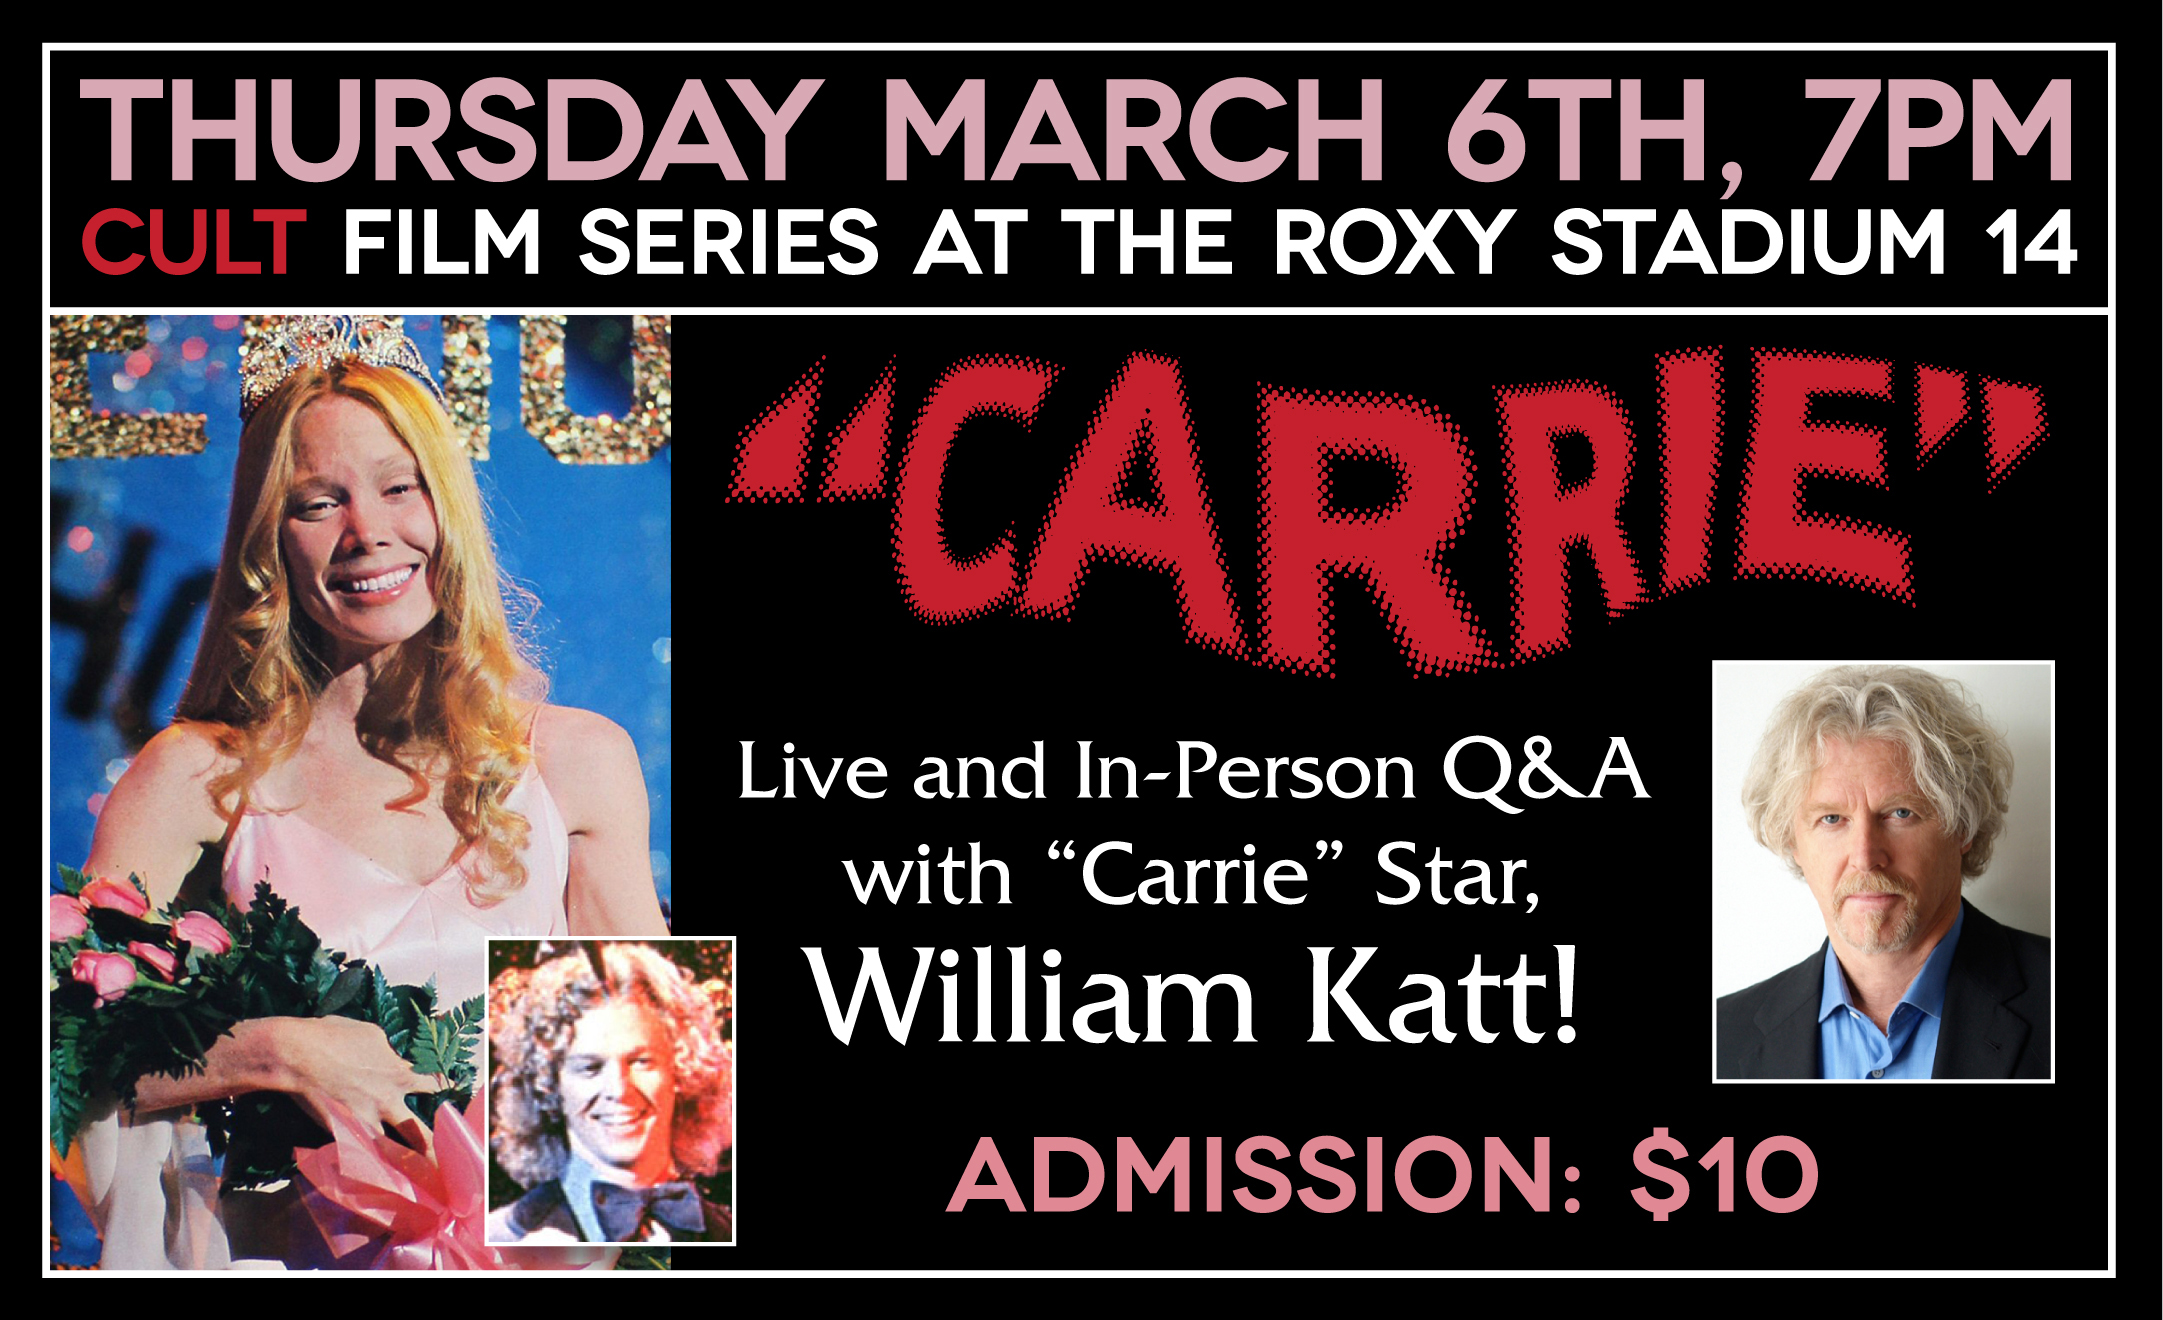 This Thursday, March 6th at the Roxy Stadium 14 Theatre in downtown Santa Rosa, the Cult Film Series will be showing Brian DePalma's original 1976 masterpiece, 'Carrie'. Leading Man, WILLIAM KATT will be appearing live, in-person for a special Q & A session after the film! Show starts at 7:00PM and admission is $10.